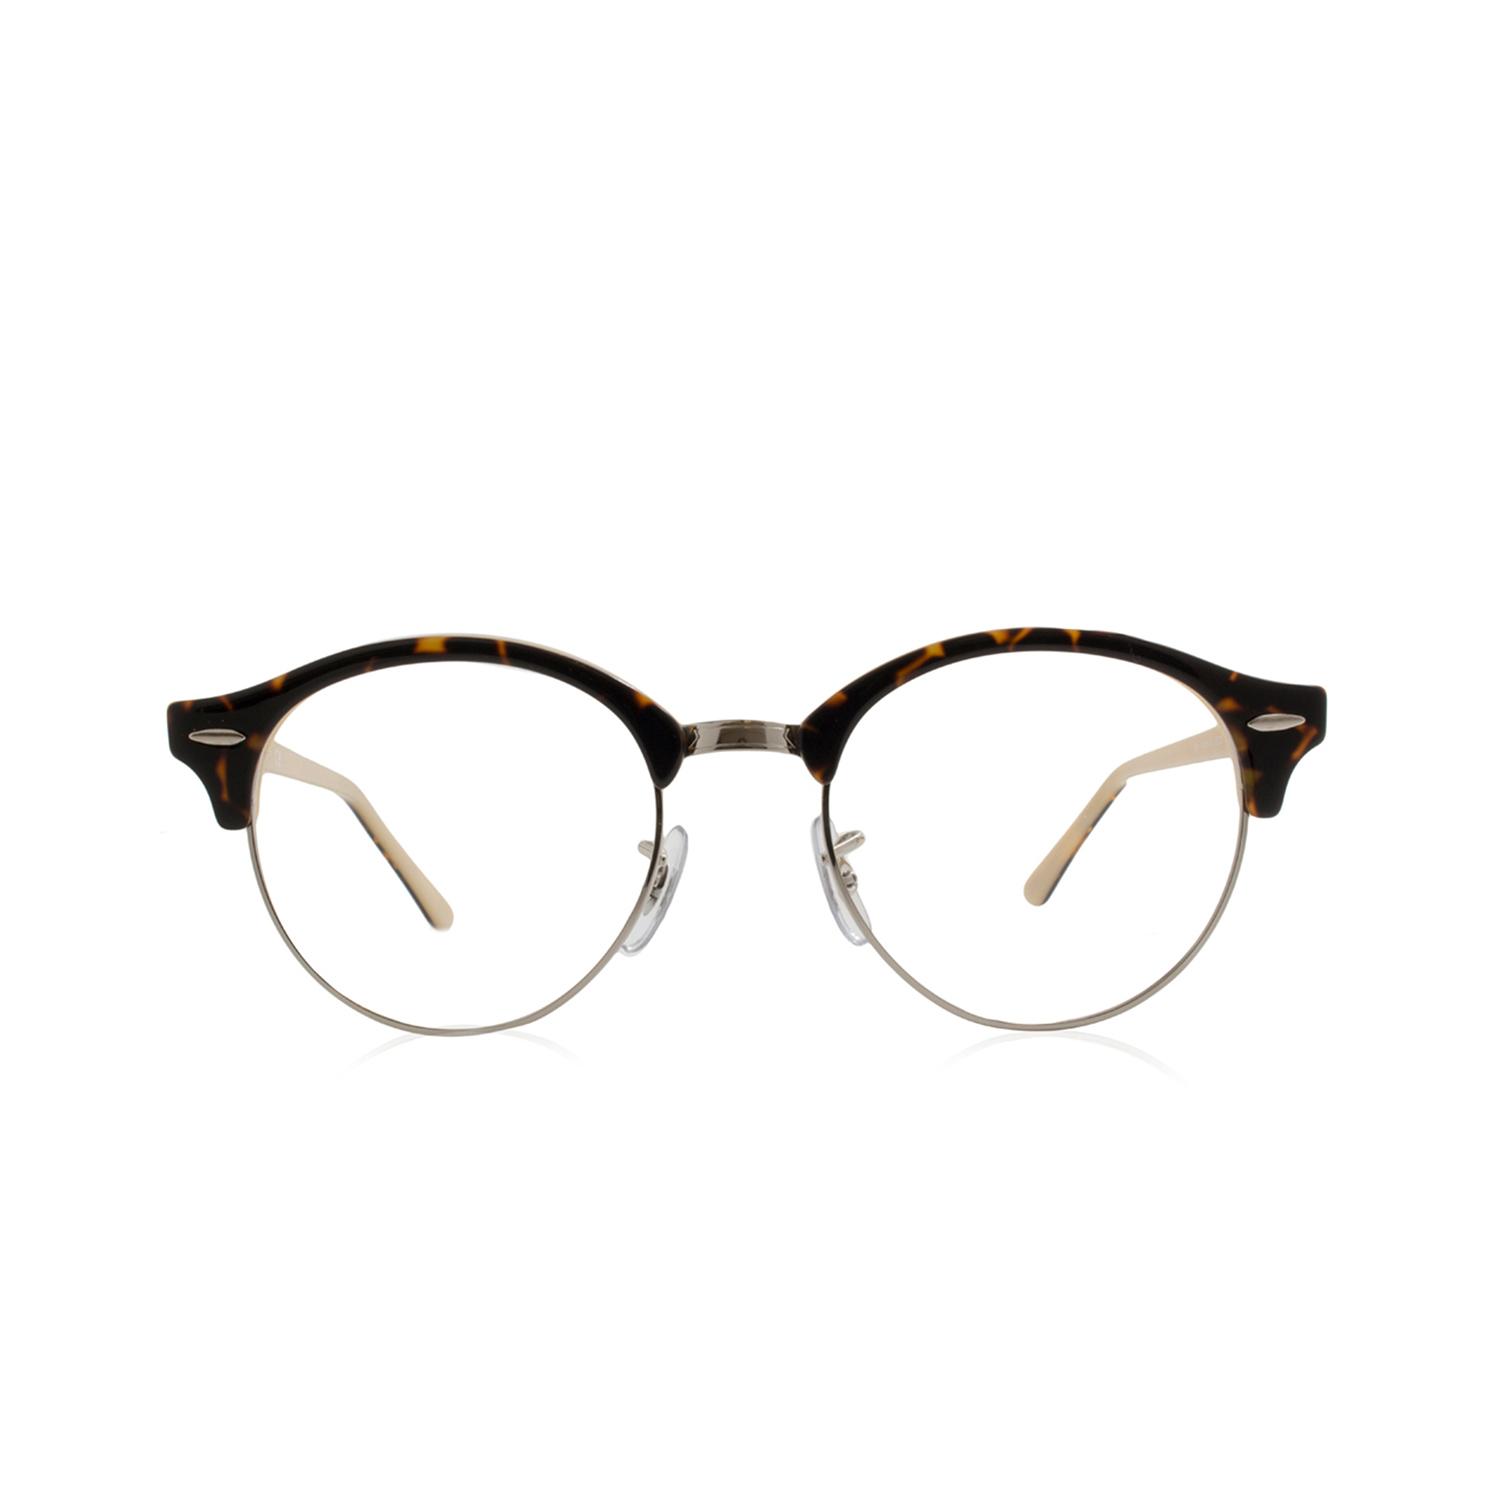 fdf824c9d0 Ray-Ban    Clubround Acetate Optical Frame    Top Havana + Opal Peach - Ray- Ban - Touch of Modern